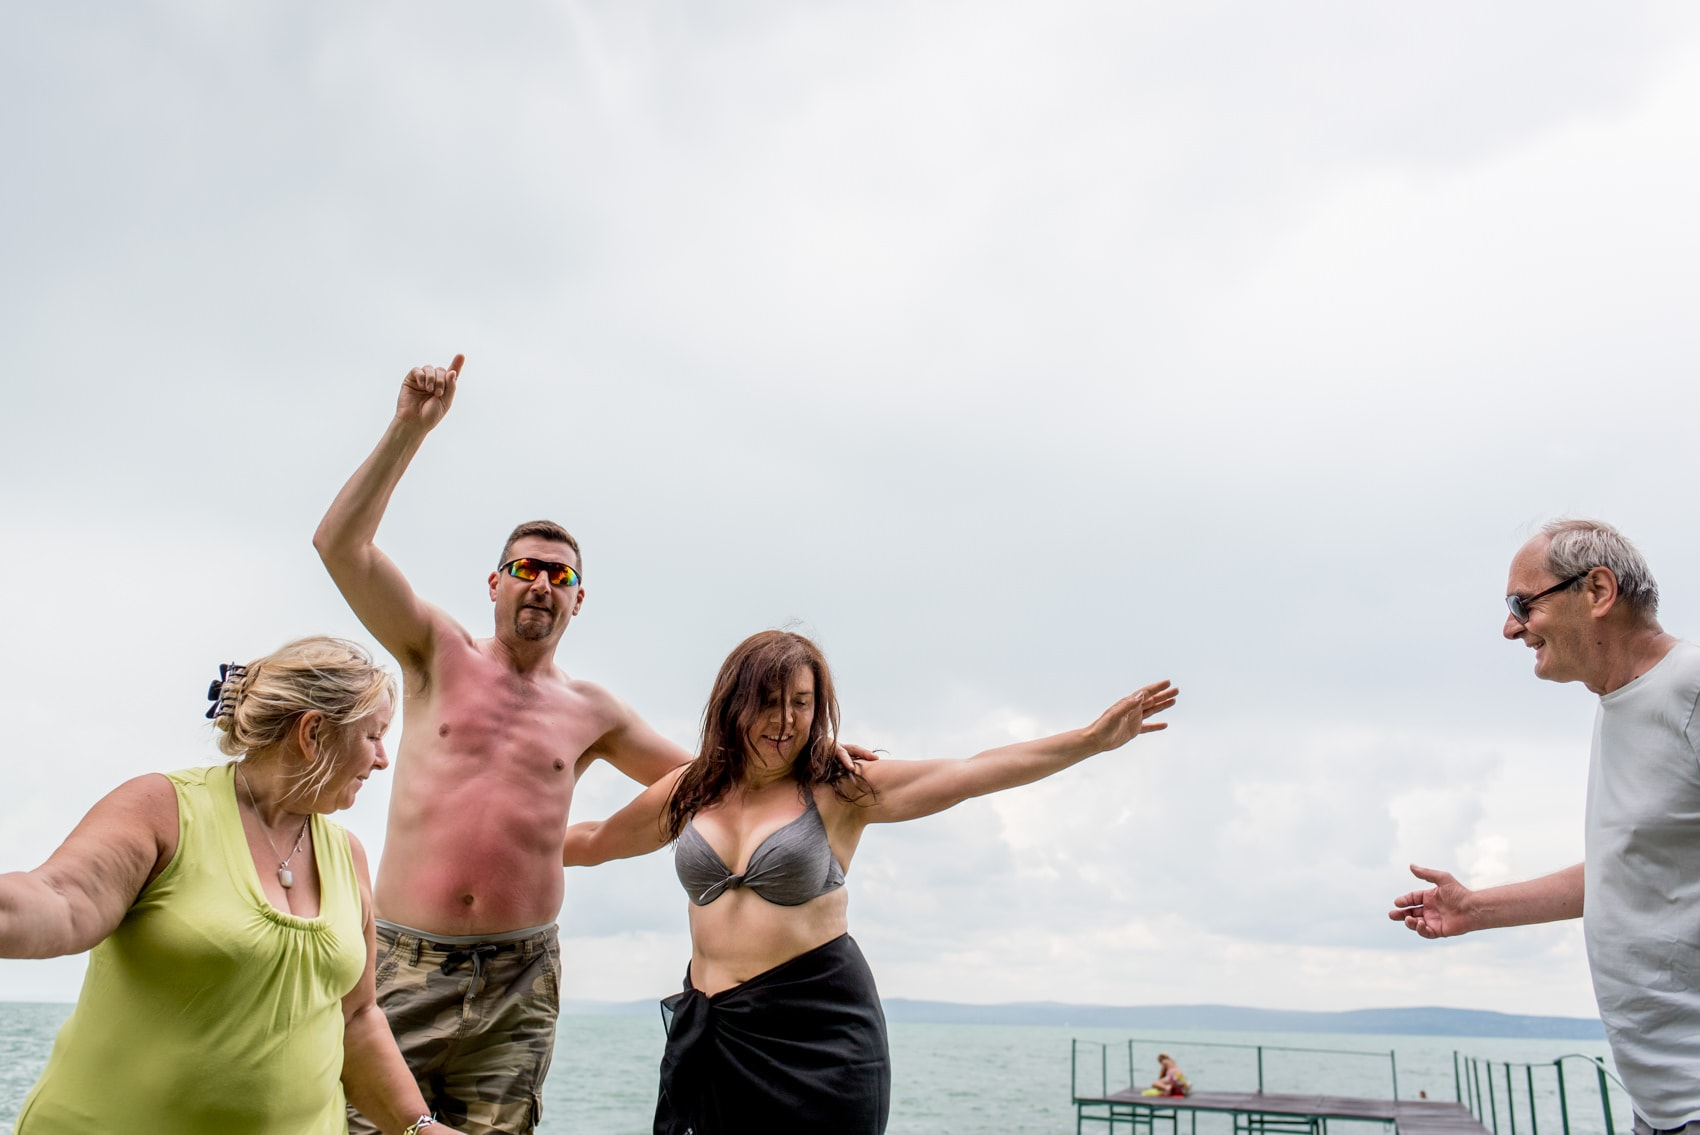 British wedding guests partying outside on shore of Lake Balaton